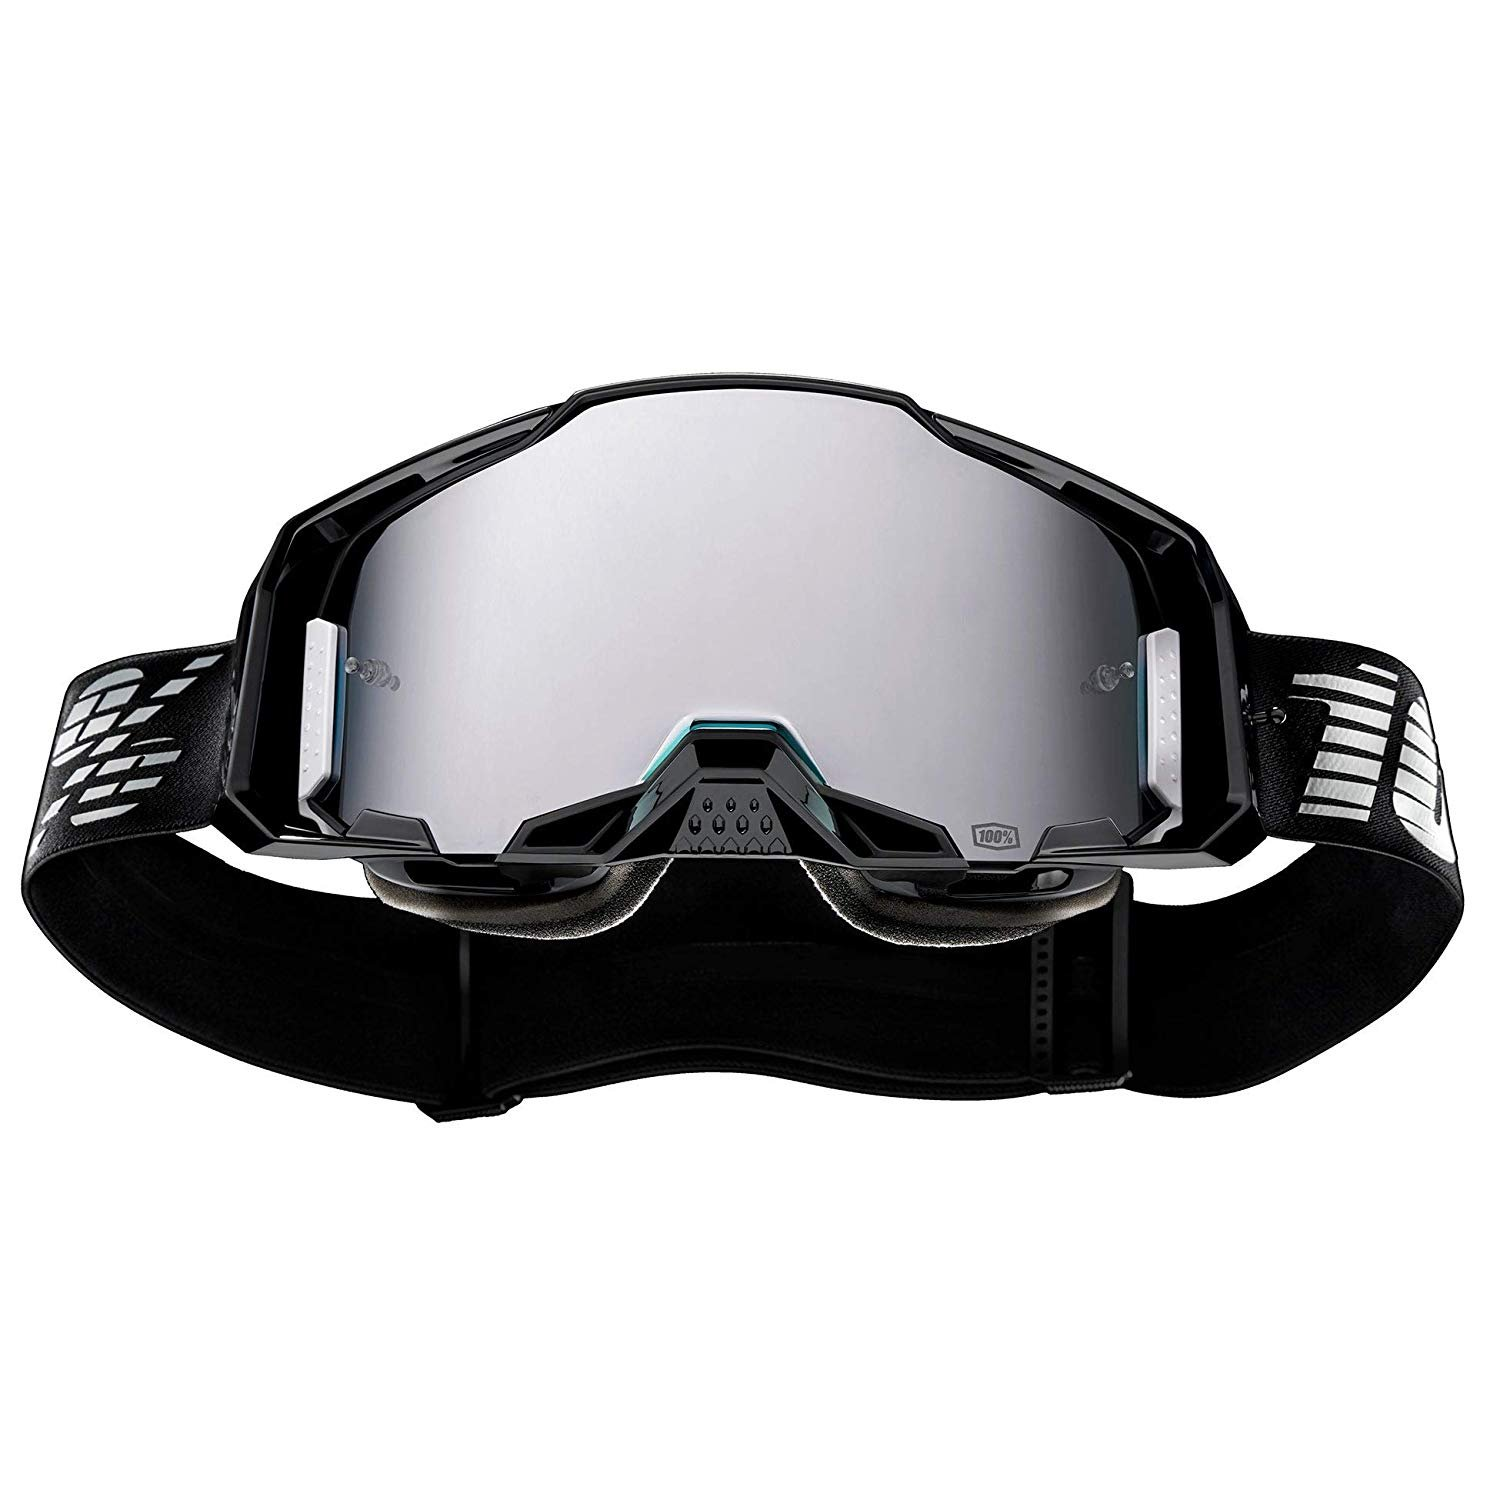 New 100/% Armega Goggles Black Mirror Silver Flash 50710-001-02